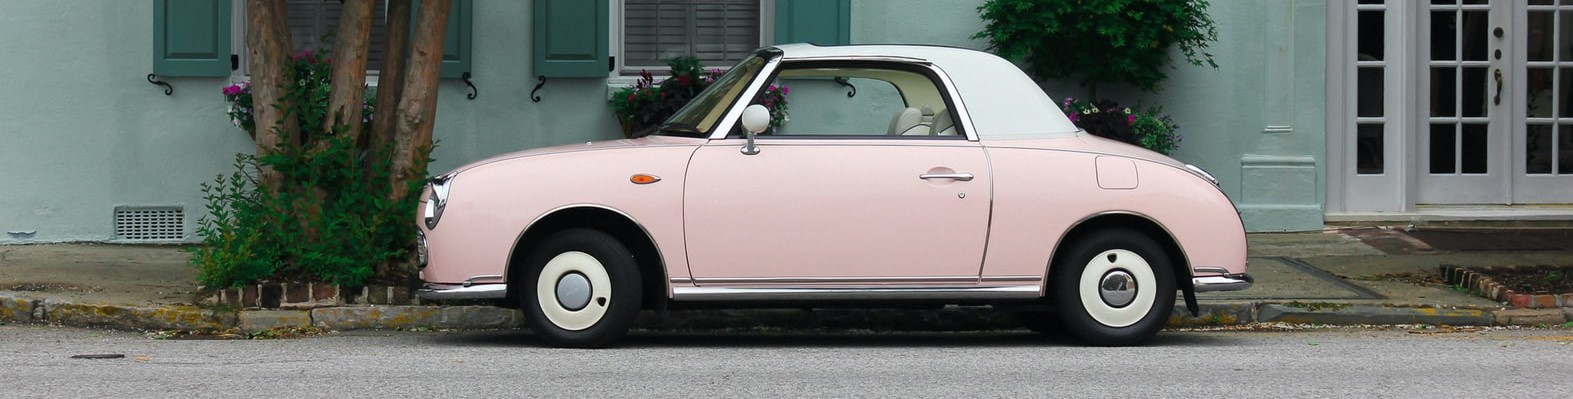 Pink Car Parked on a Street | Breast Cancer Car Donations